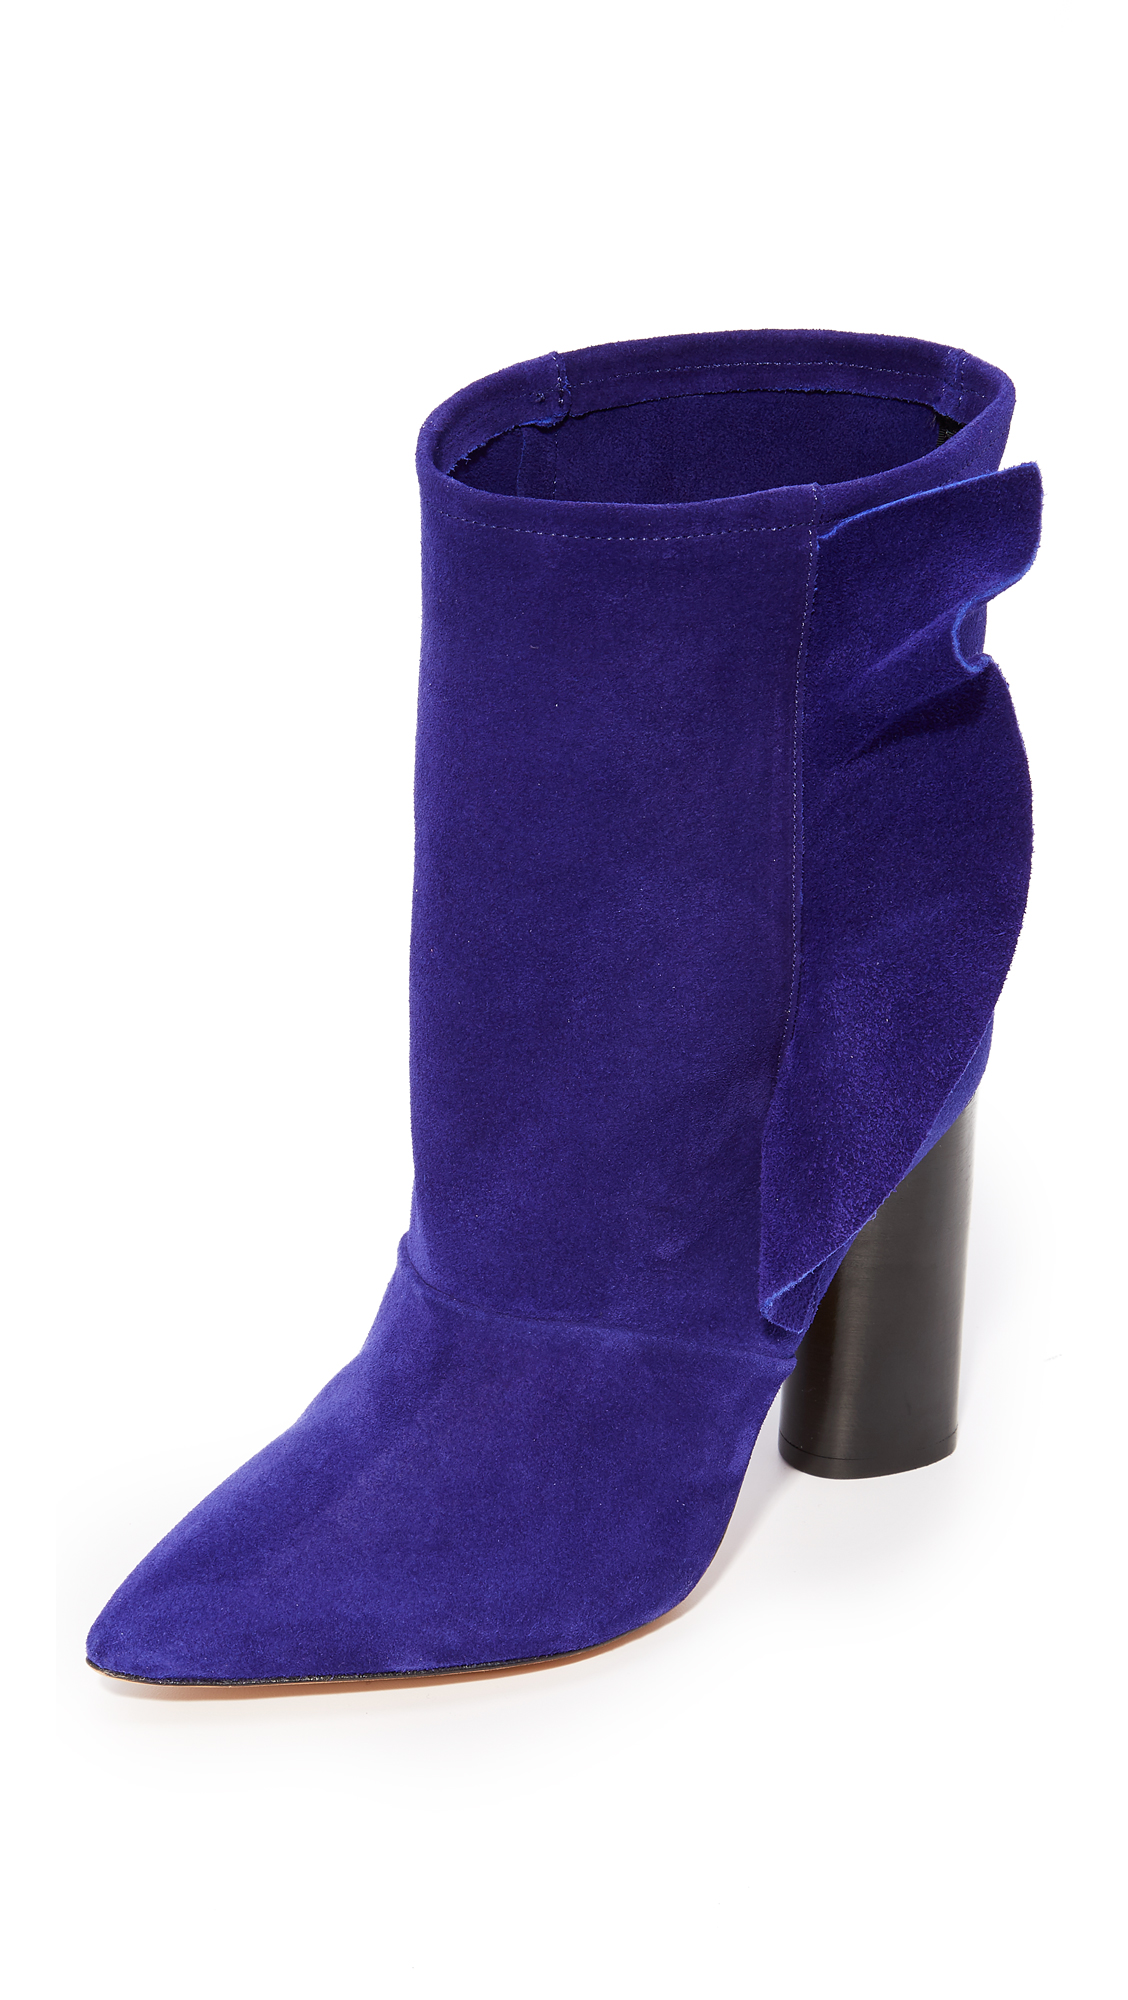 IRO Cidravolti Booties - Purple